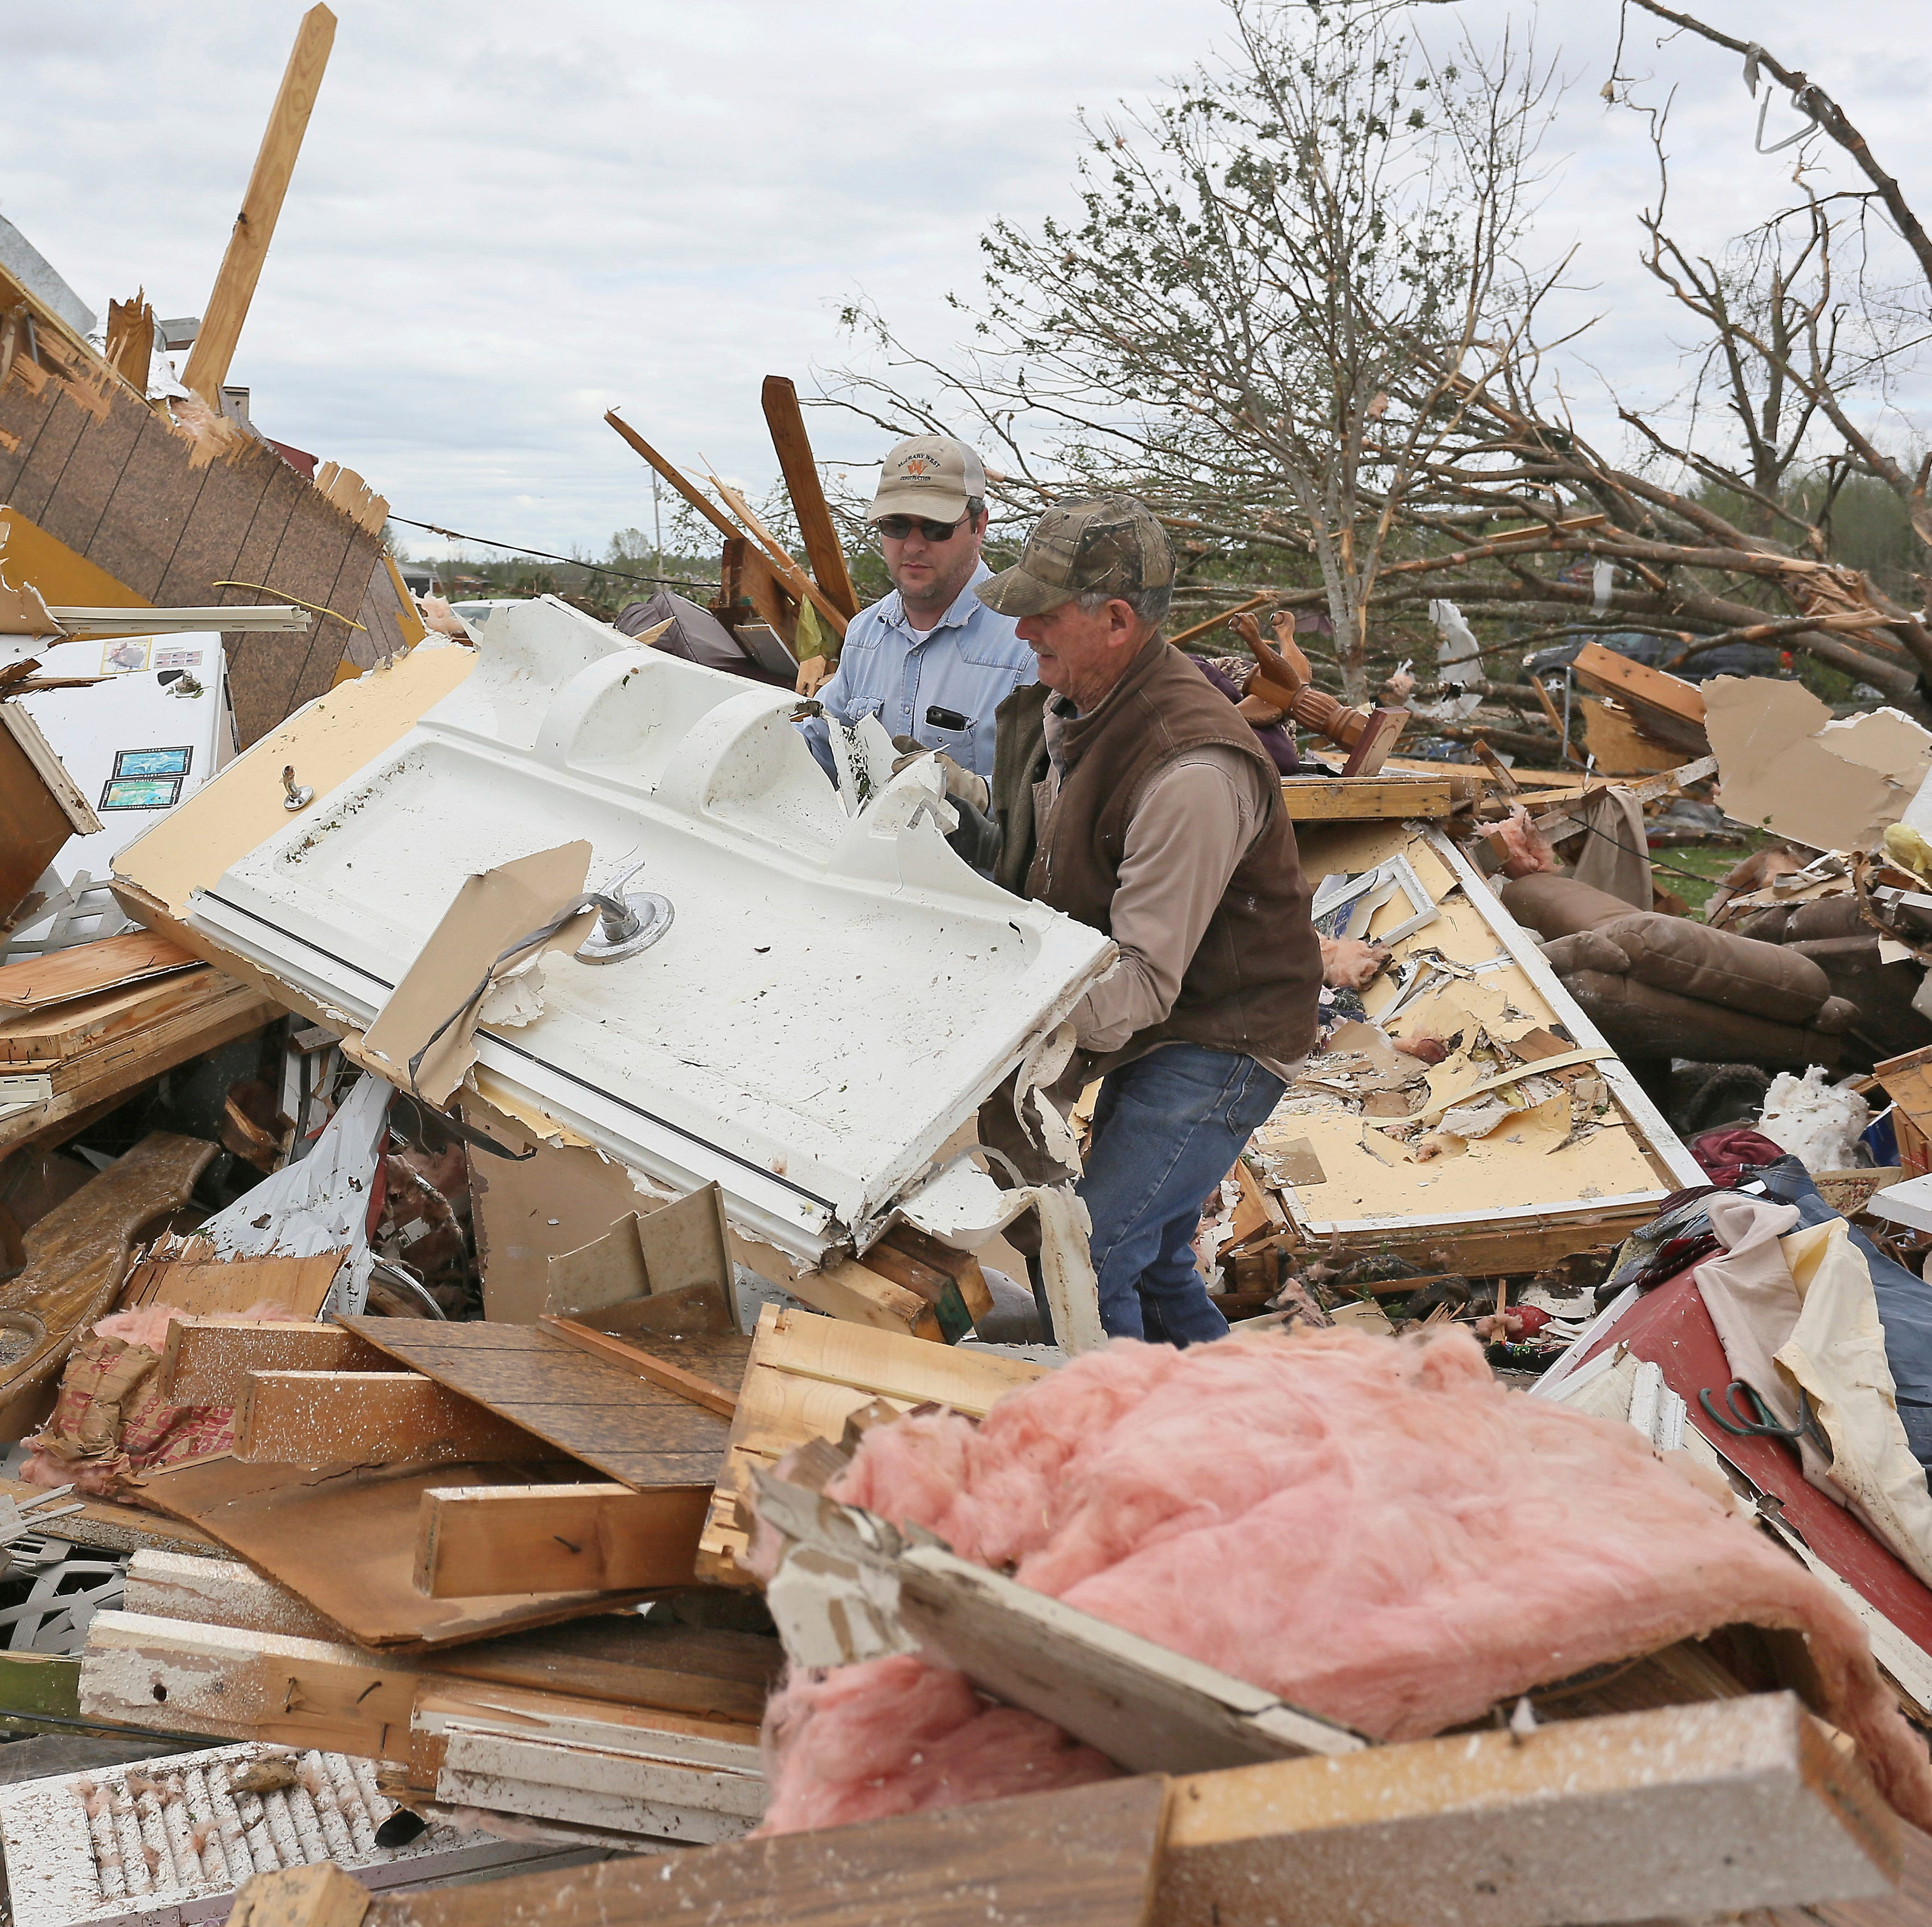 Extreme weather continues to batter USA this year: Is global warming to blame?